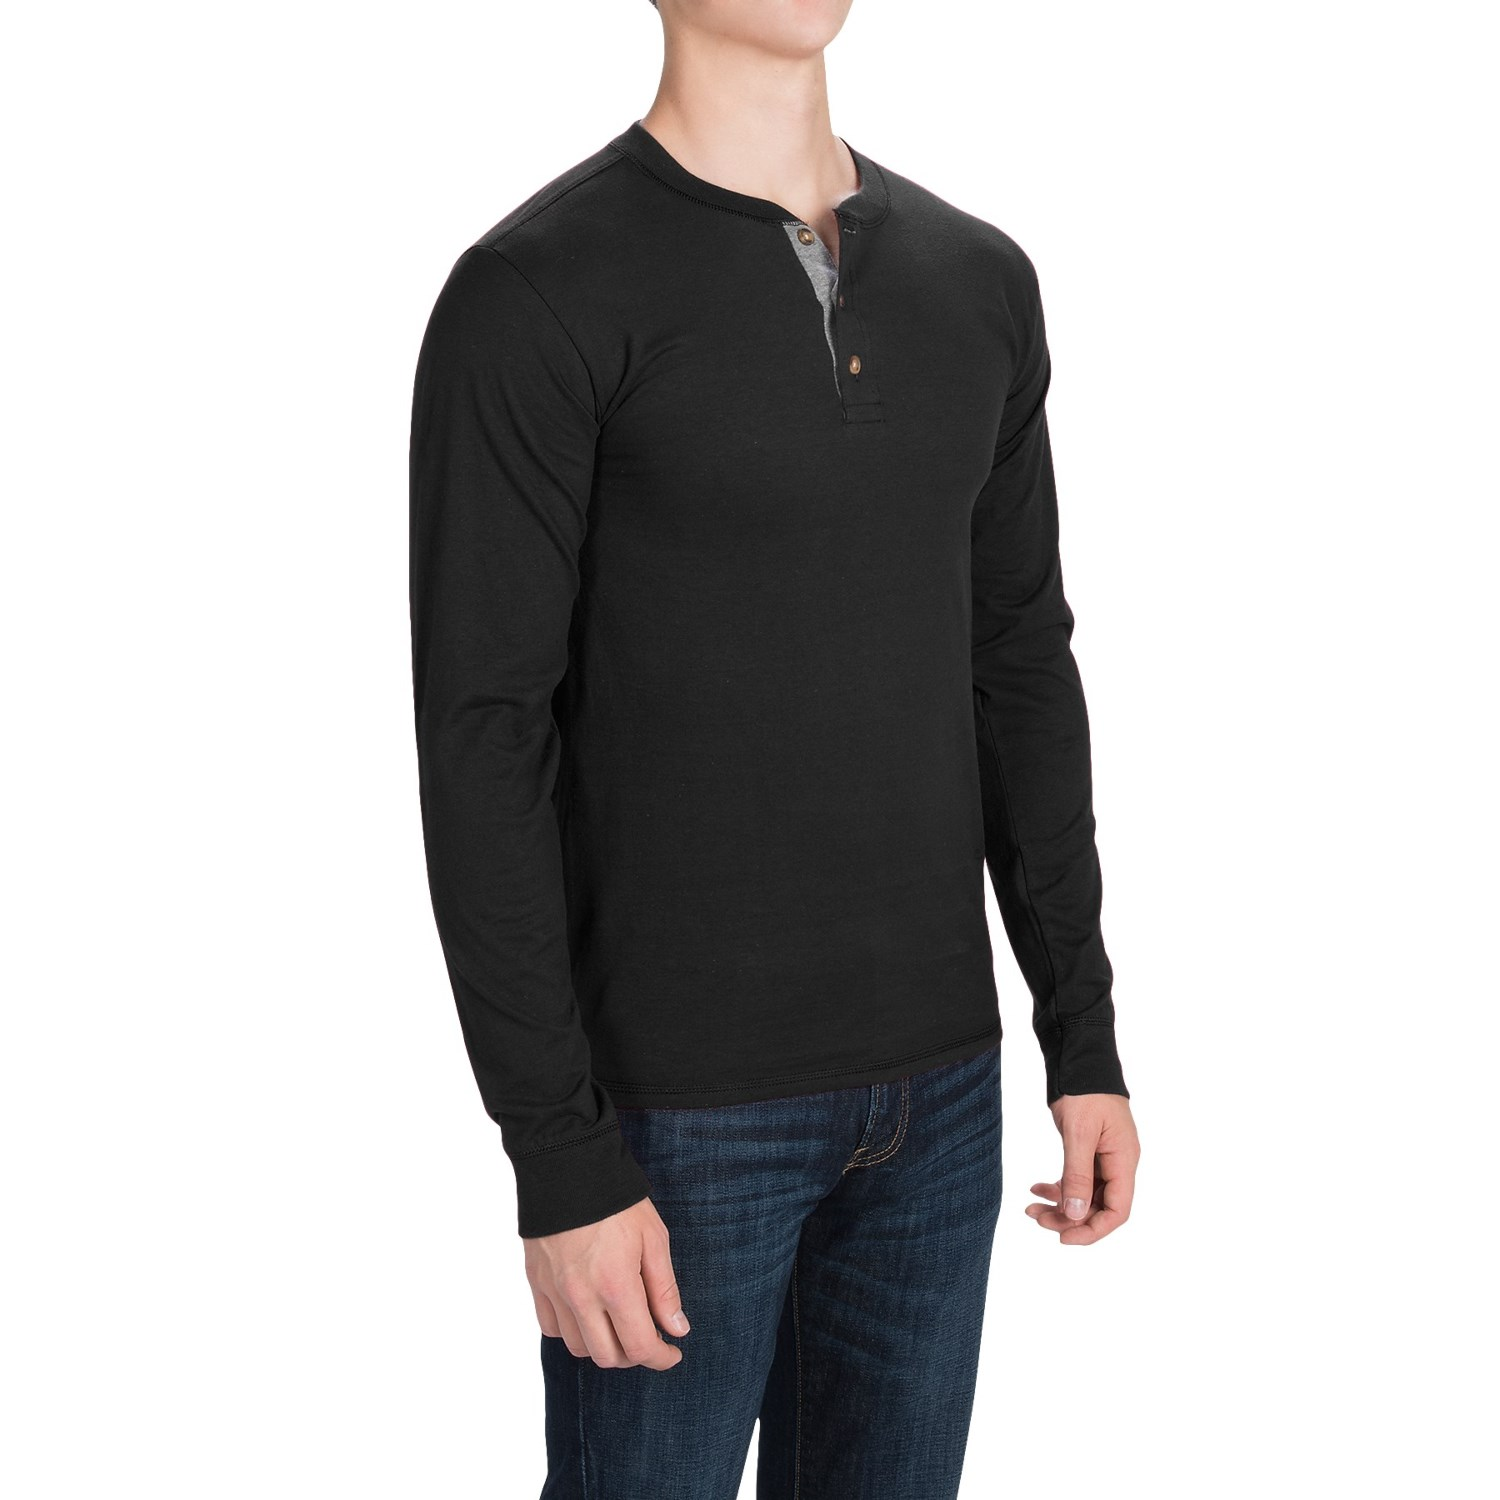 Looking for Womens Henley Shirt? Shop online at dnxvvyut.ml for the latest Womens Henley Shirt. Free shipping available!